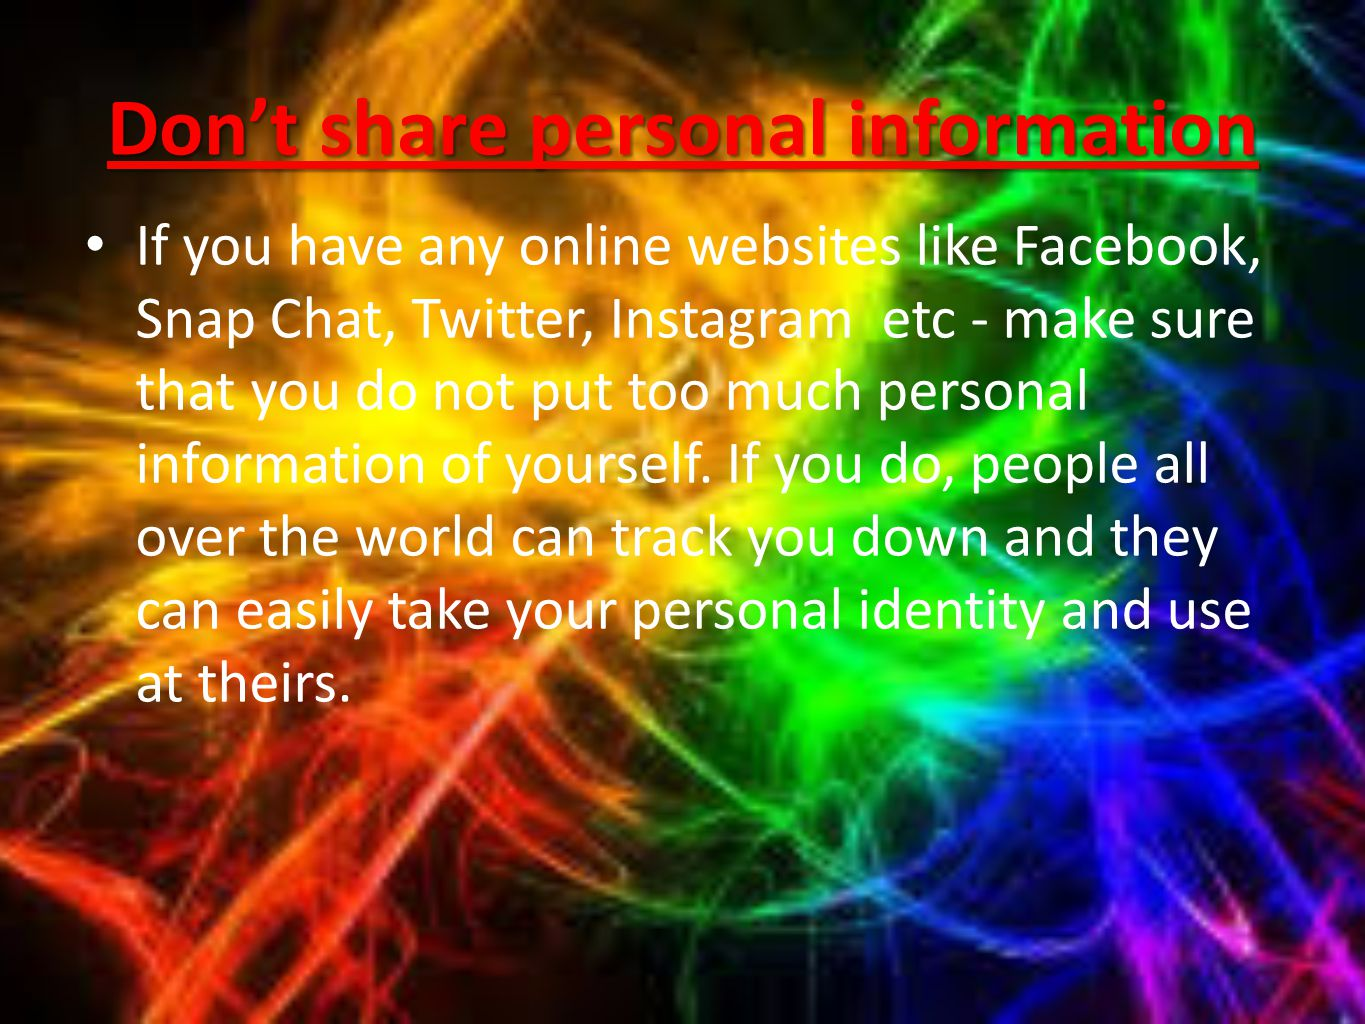 Don't share personal information If you have any online websites like Facebook, Snap Chat, Twitter, Instagram etc - make sure that you do not put too